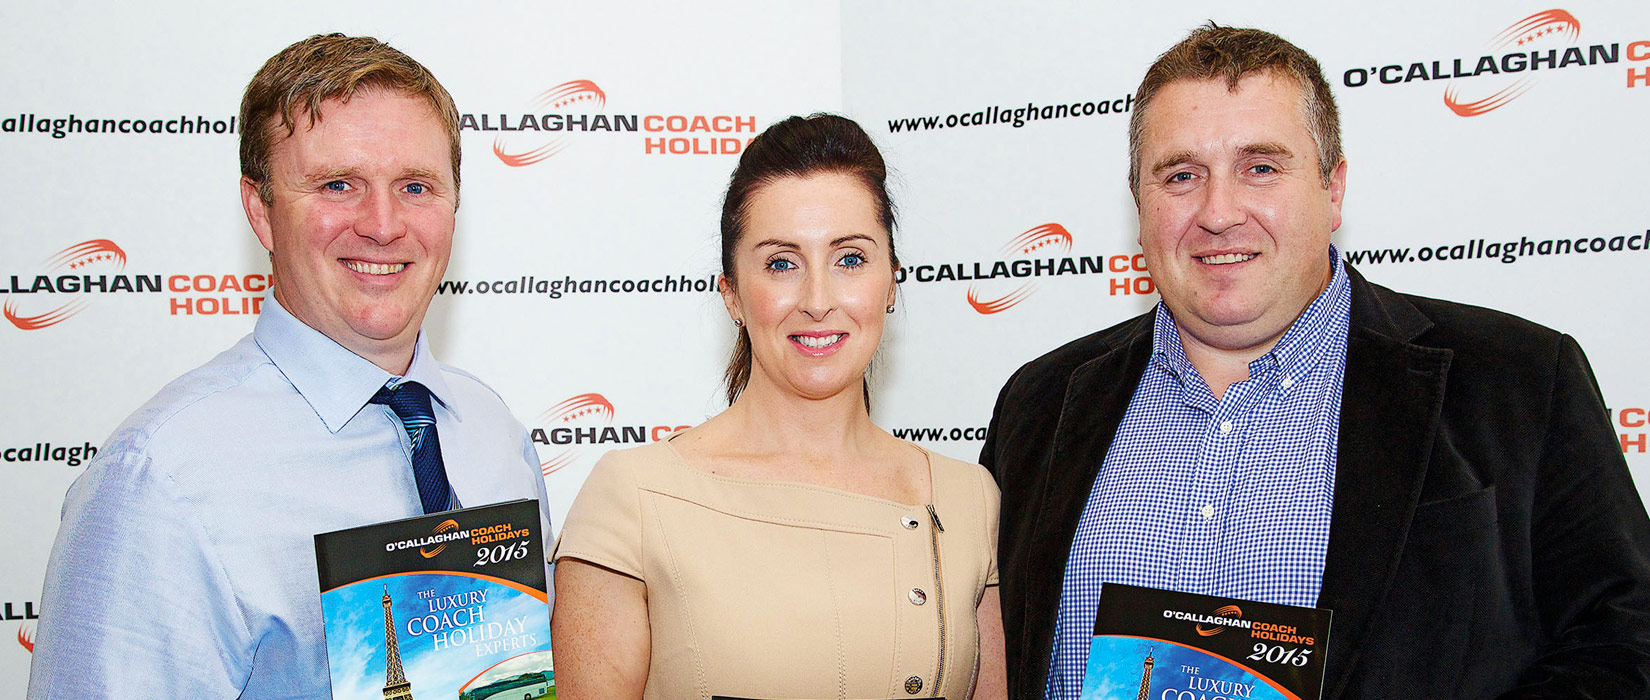 Philip, Catriona and Eamon O'Callaghan